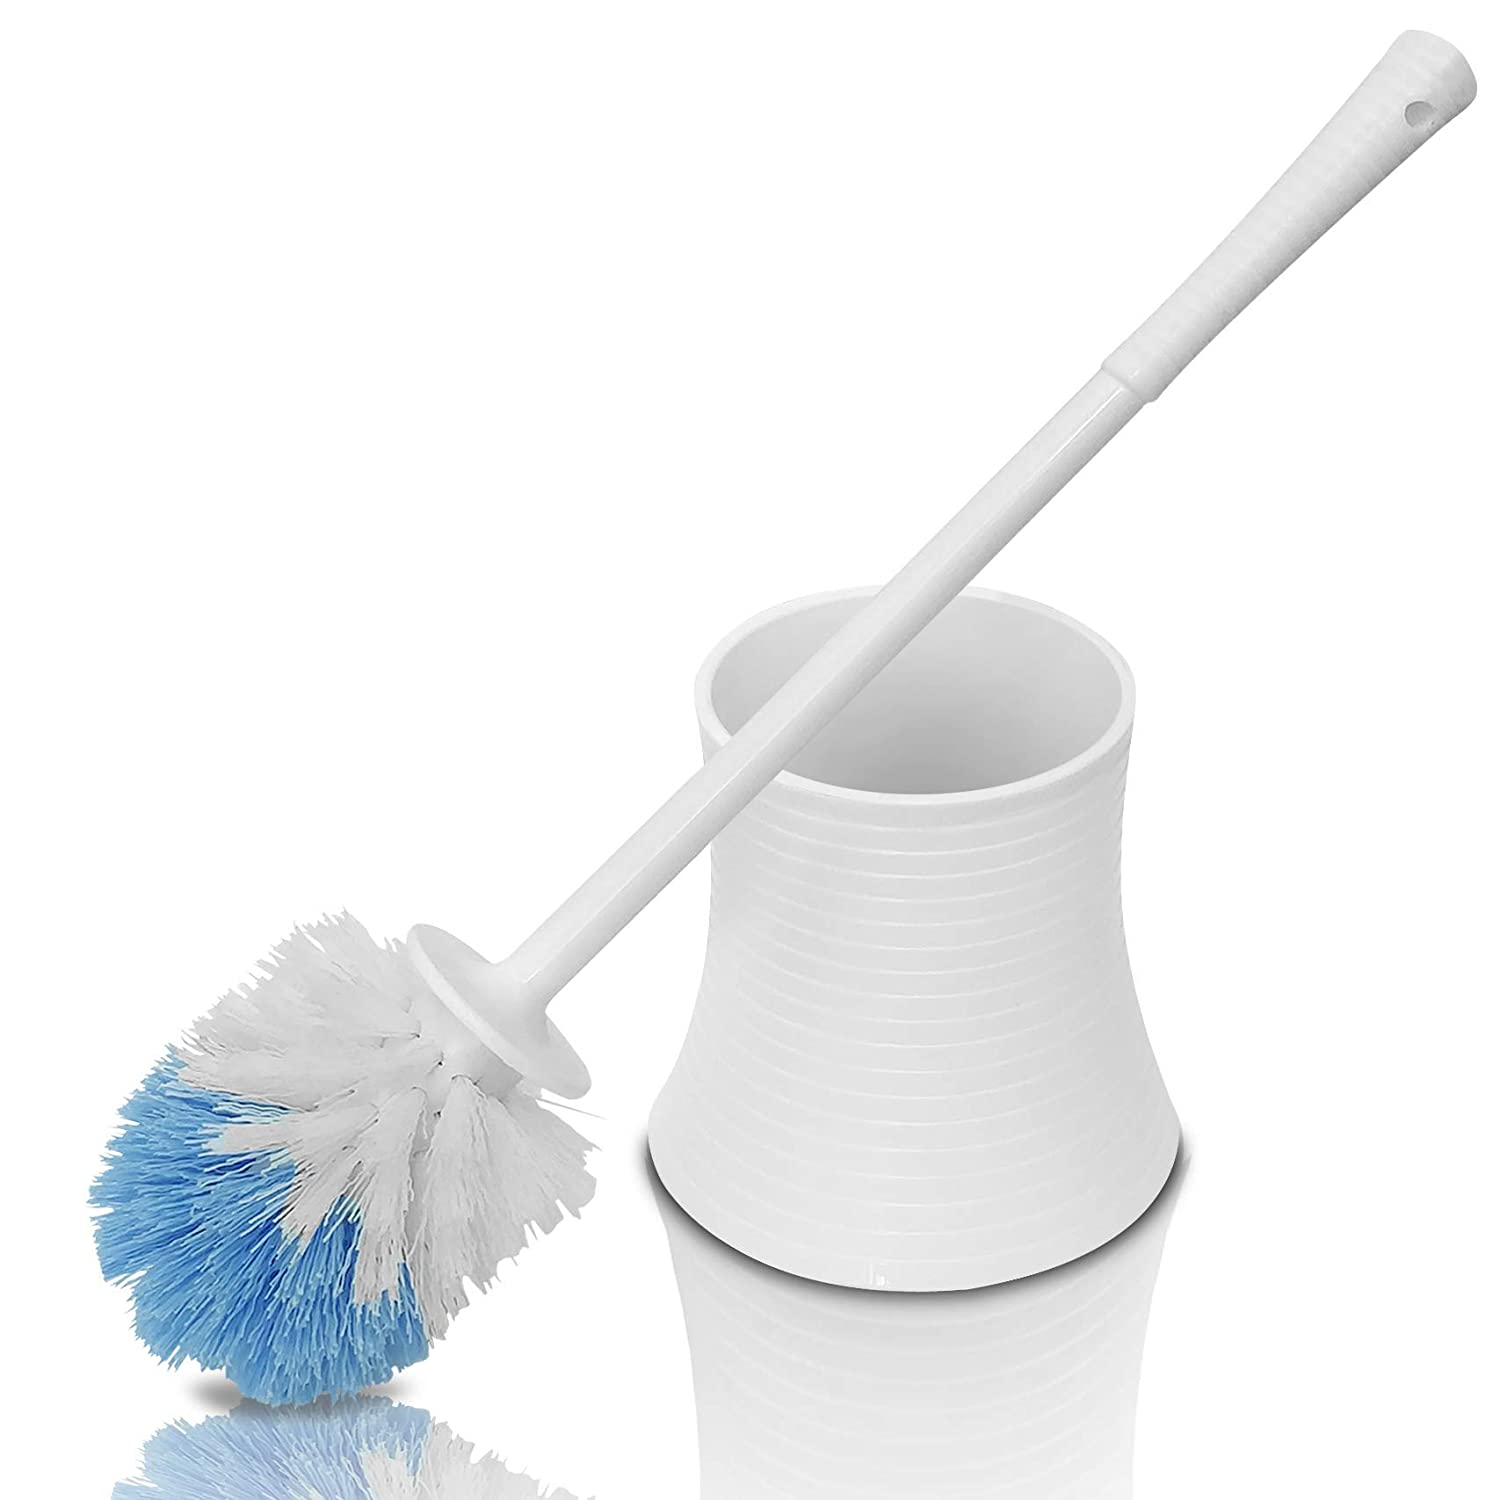 Leakproof (no Hole in Holder) Toilet Brush Set with Holder, White Pearl, Plastic - Chimpy - Bathroom Bowl Cleaner and Base, Good Grip Strong Bristles Chimpy Ltd.